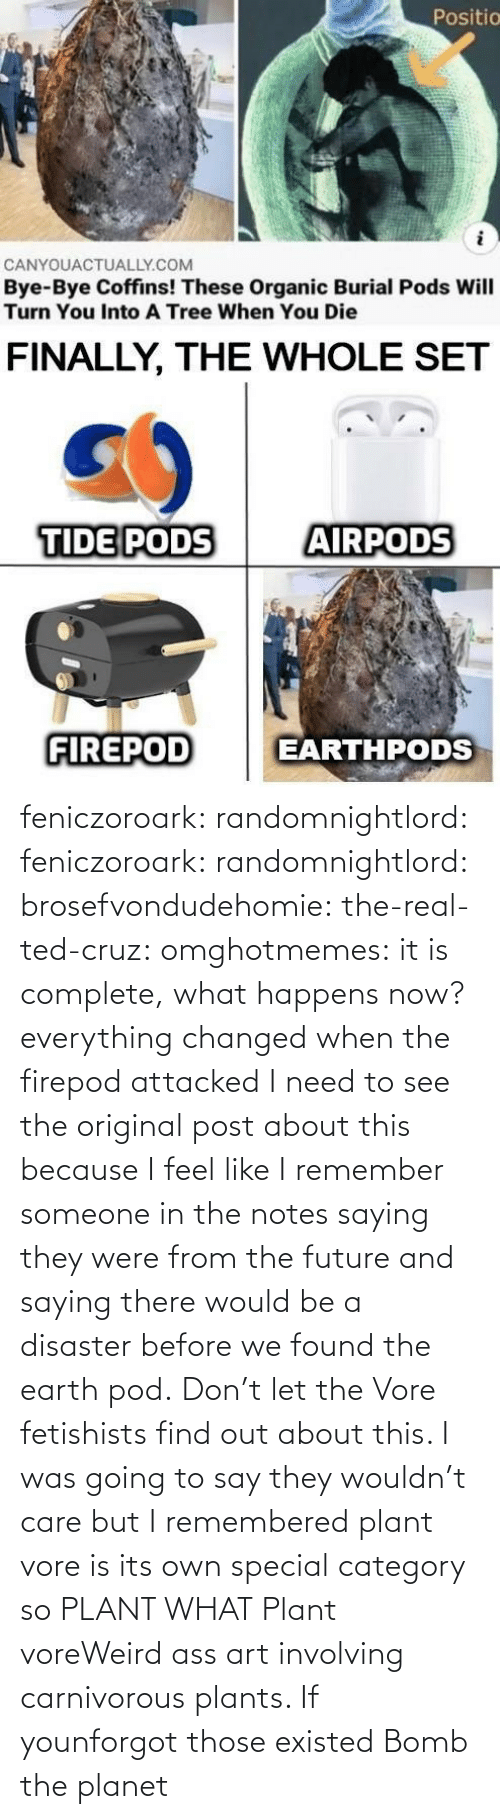 The Real: feniczoroark:  randomnightlord:  feniczoroark:  randomnightlord:  brosefvondudehomie: the-real-ted-cruz:  omghotmemes: it is complete, what happens now? everything changed when the firepod attacked    I need to see the original post about this because I feel like I remember someone in the notes saying they were from the future and saying there would be a disaster before we found the earth pod.    Don't let the Vore fetishists find out about this.    I was going to say they wouldn't care but I remembered plant vore is its own special category so   PLANT WHAT   Plant voreWeird ass art involving carnivorous plants. If younforgot those existed   Bomb the planet